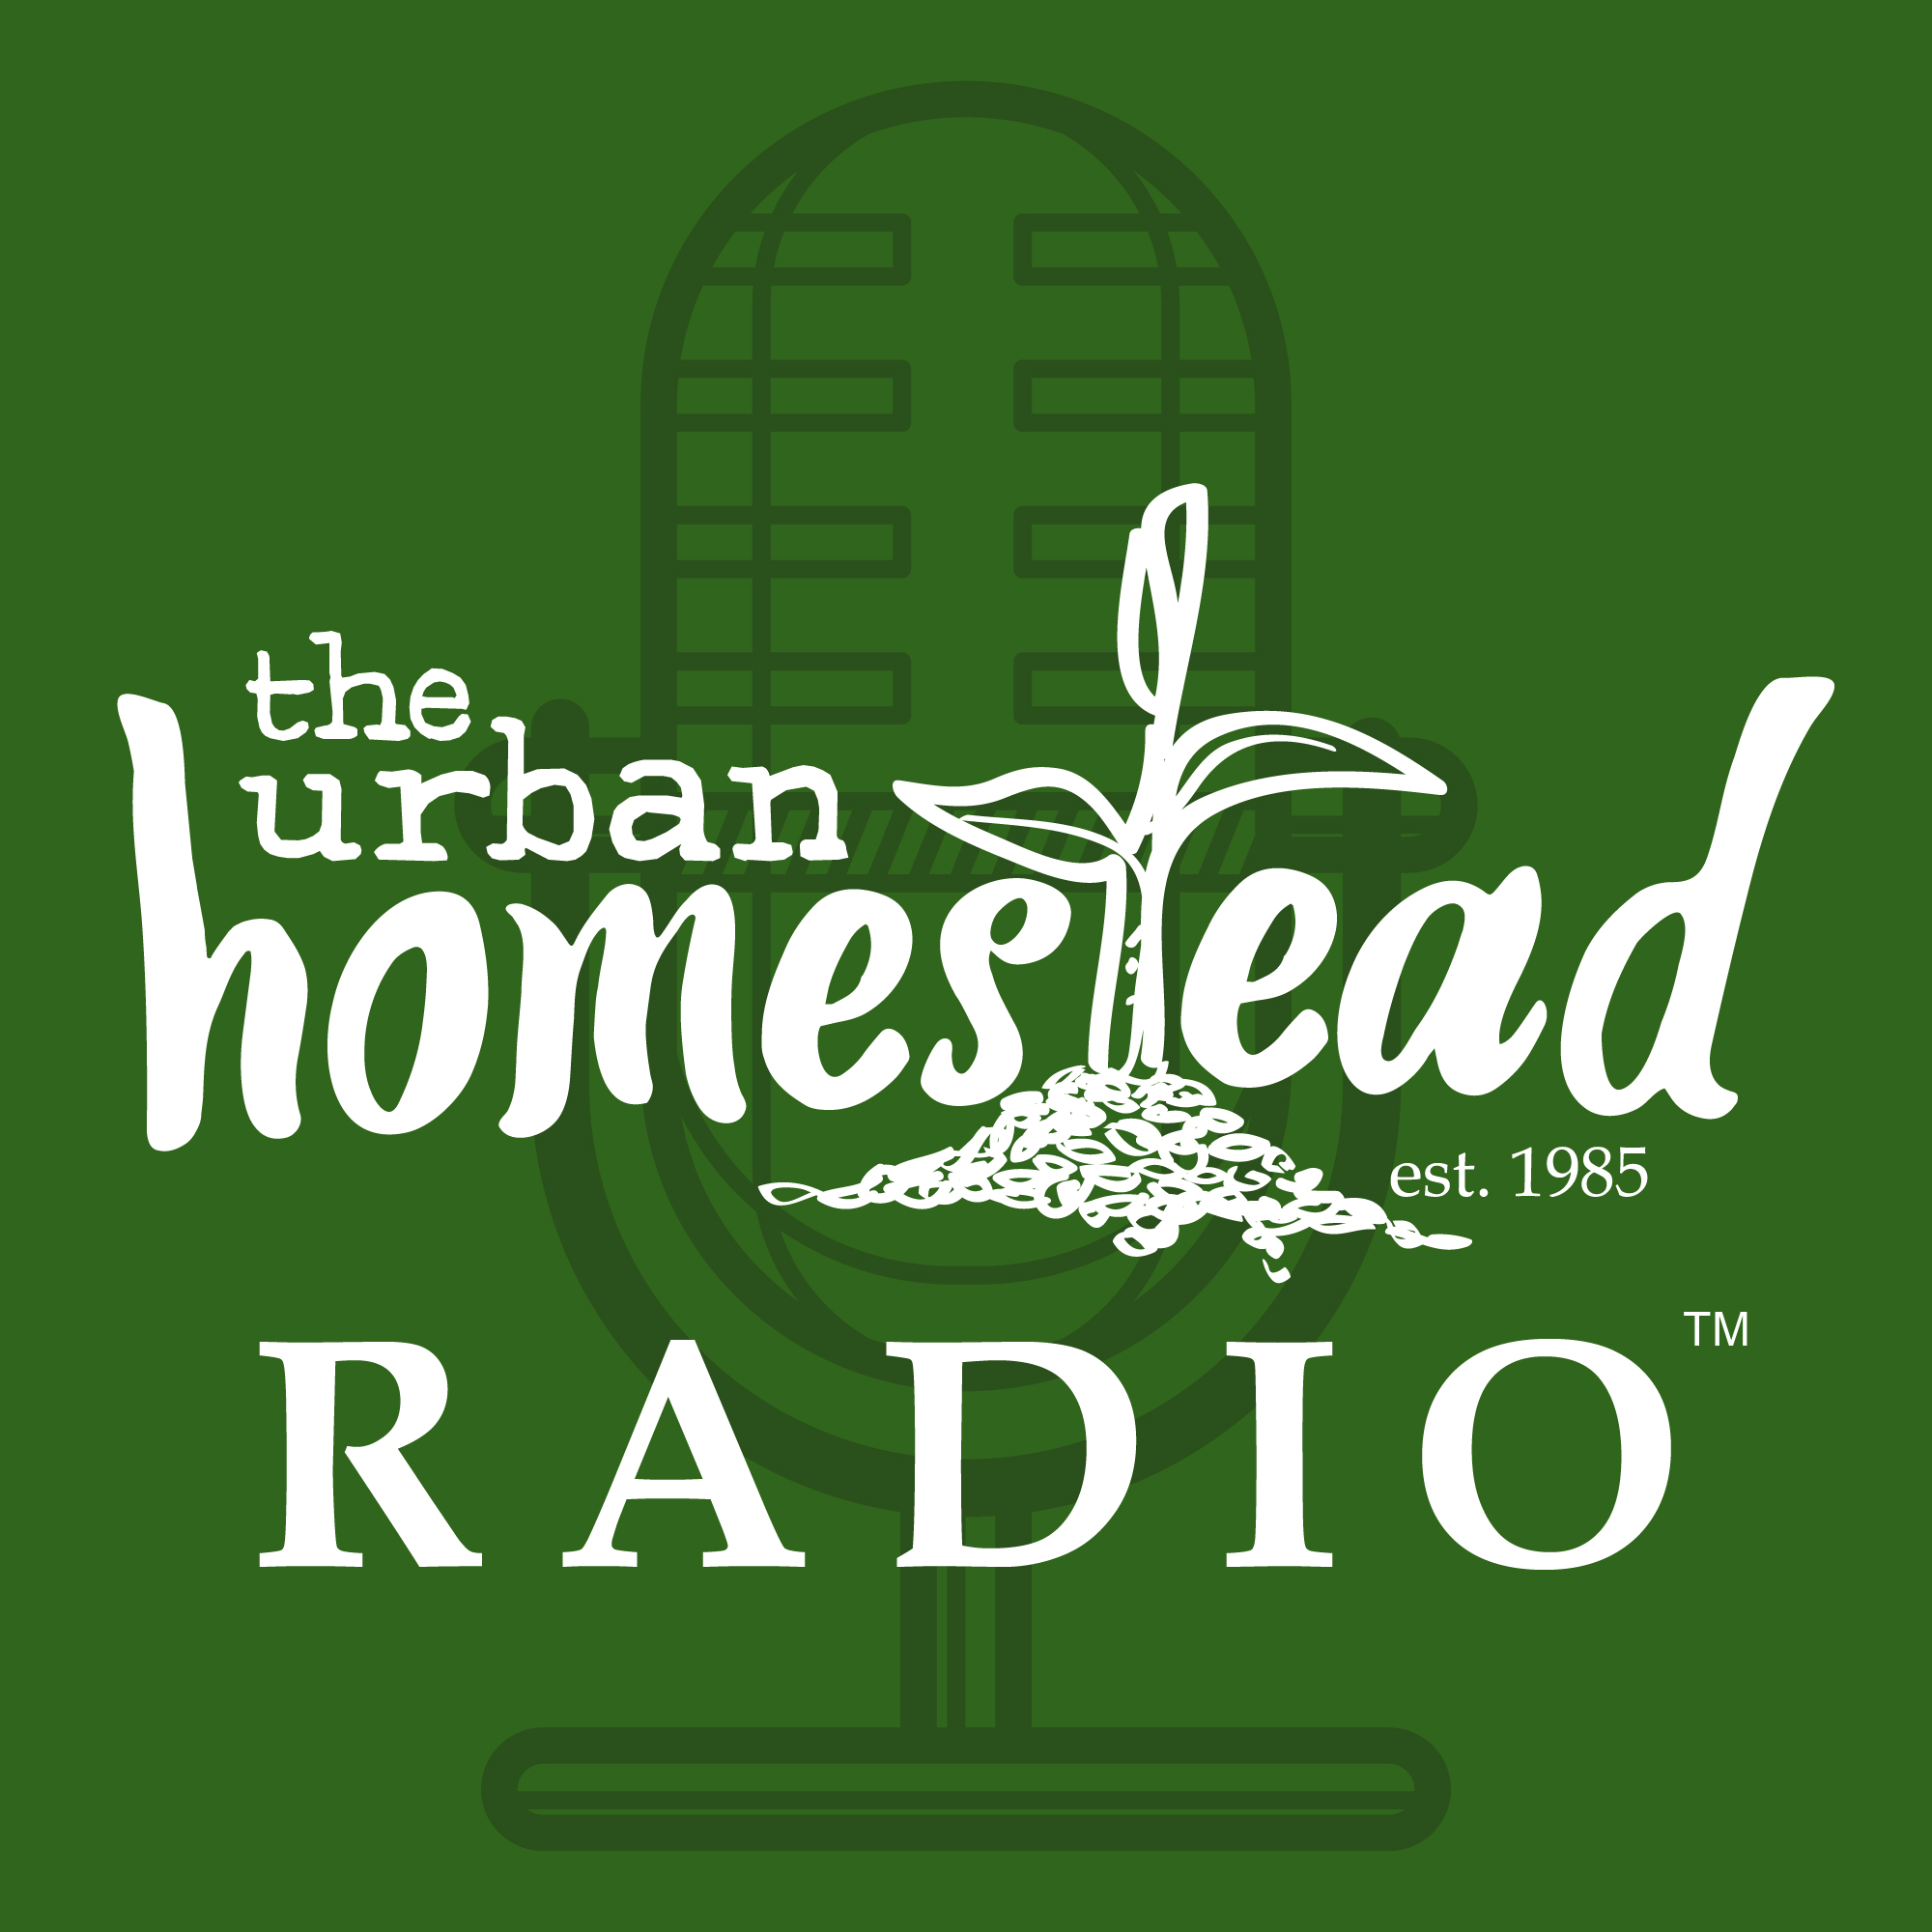 Urban Homestead Radio Episode 8: France 5 Filming